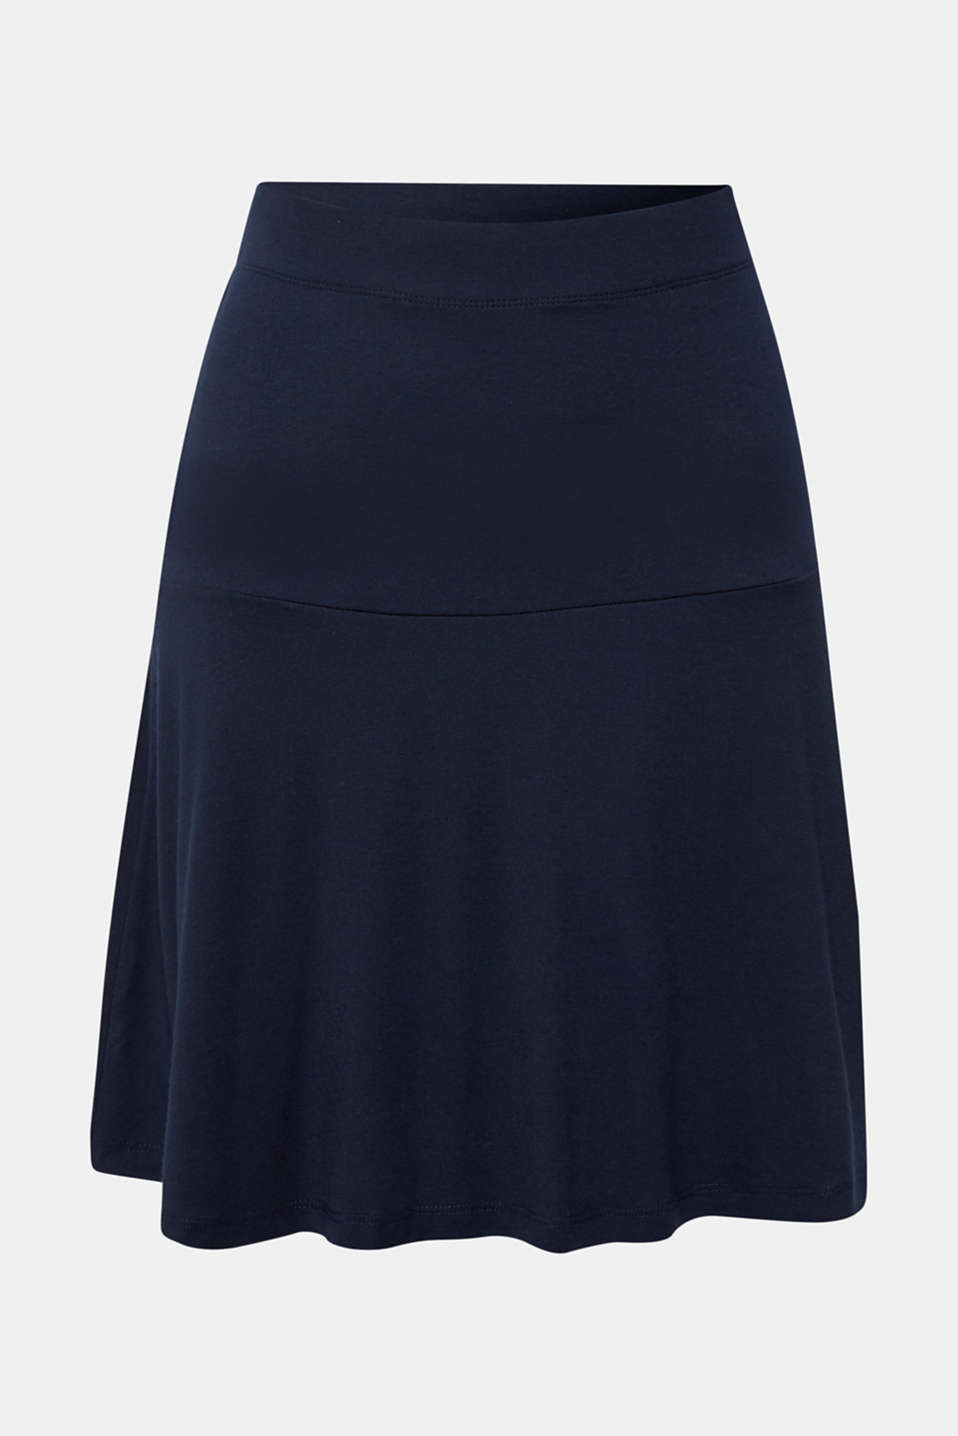 Skirts knitted, NAVY, detail image number 6